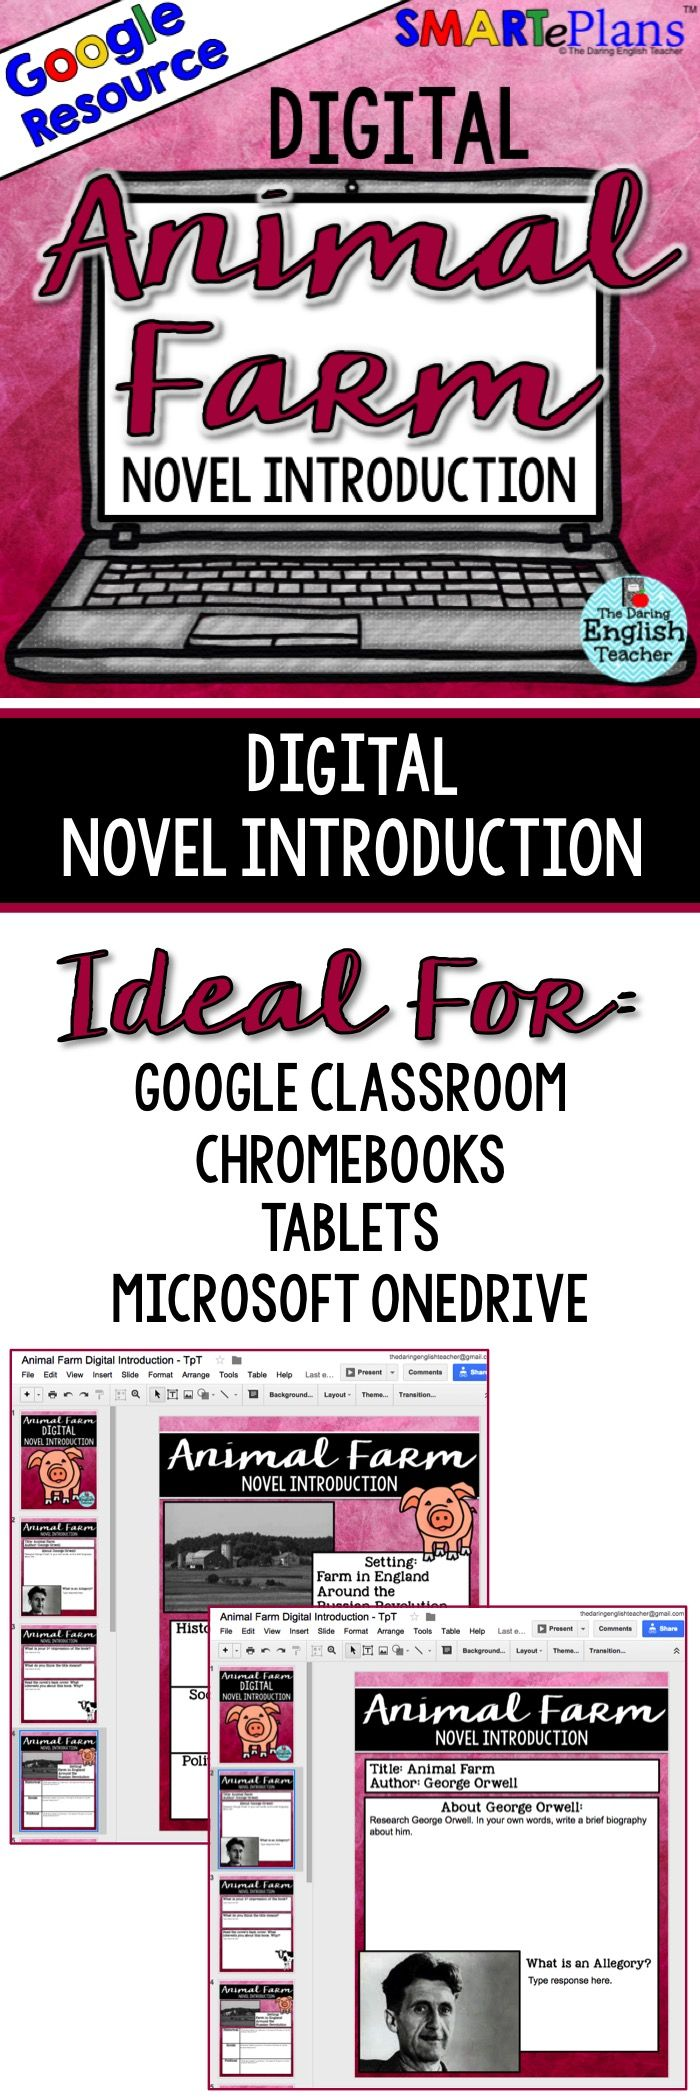 best ideas about animal farm novel animal farm digital animal farm novel introduction for google drive smarteplans google classroom blended learning